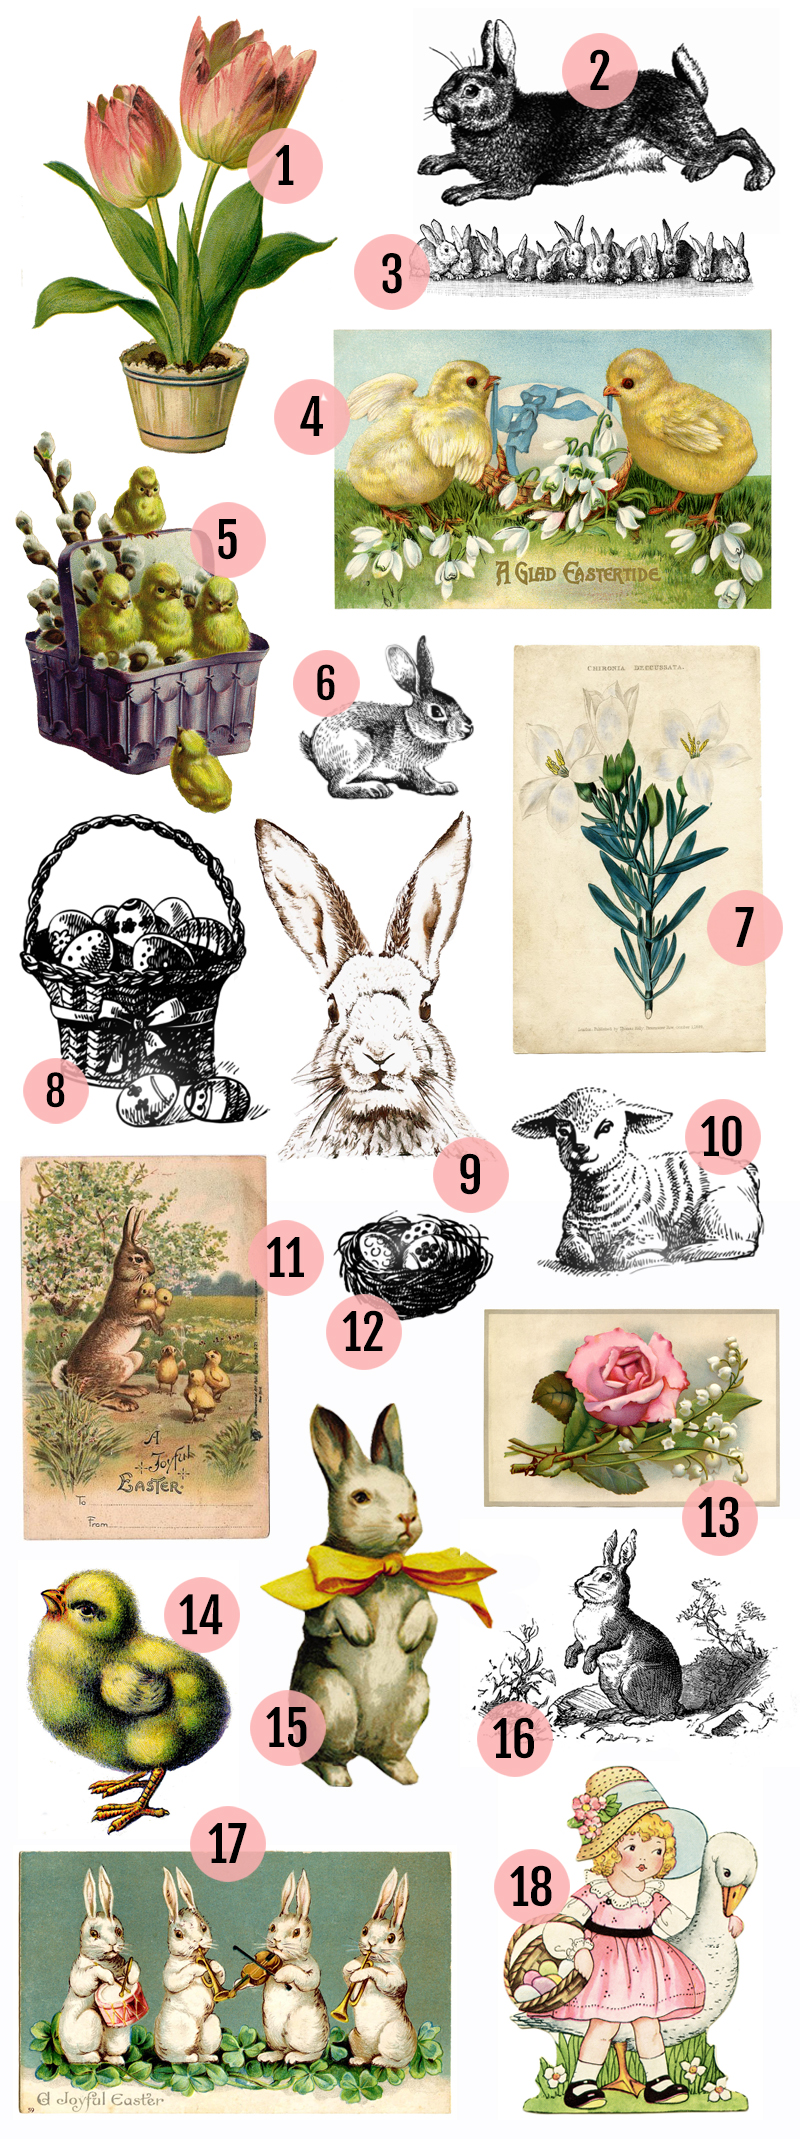 Free vintage easter clipart images svg stock Free Vintage Easter Clipart Images » Maggie Holmes Design svg stock